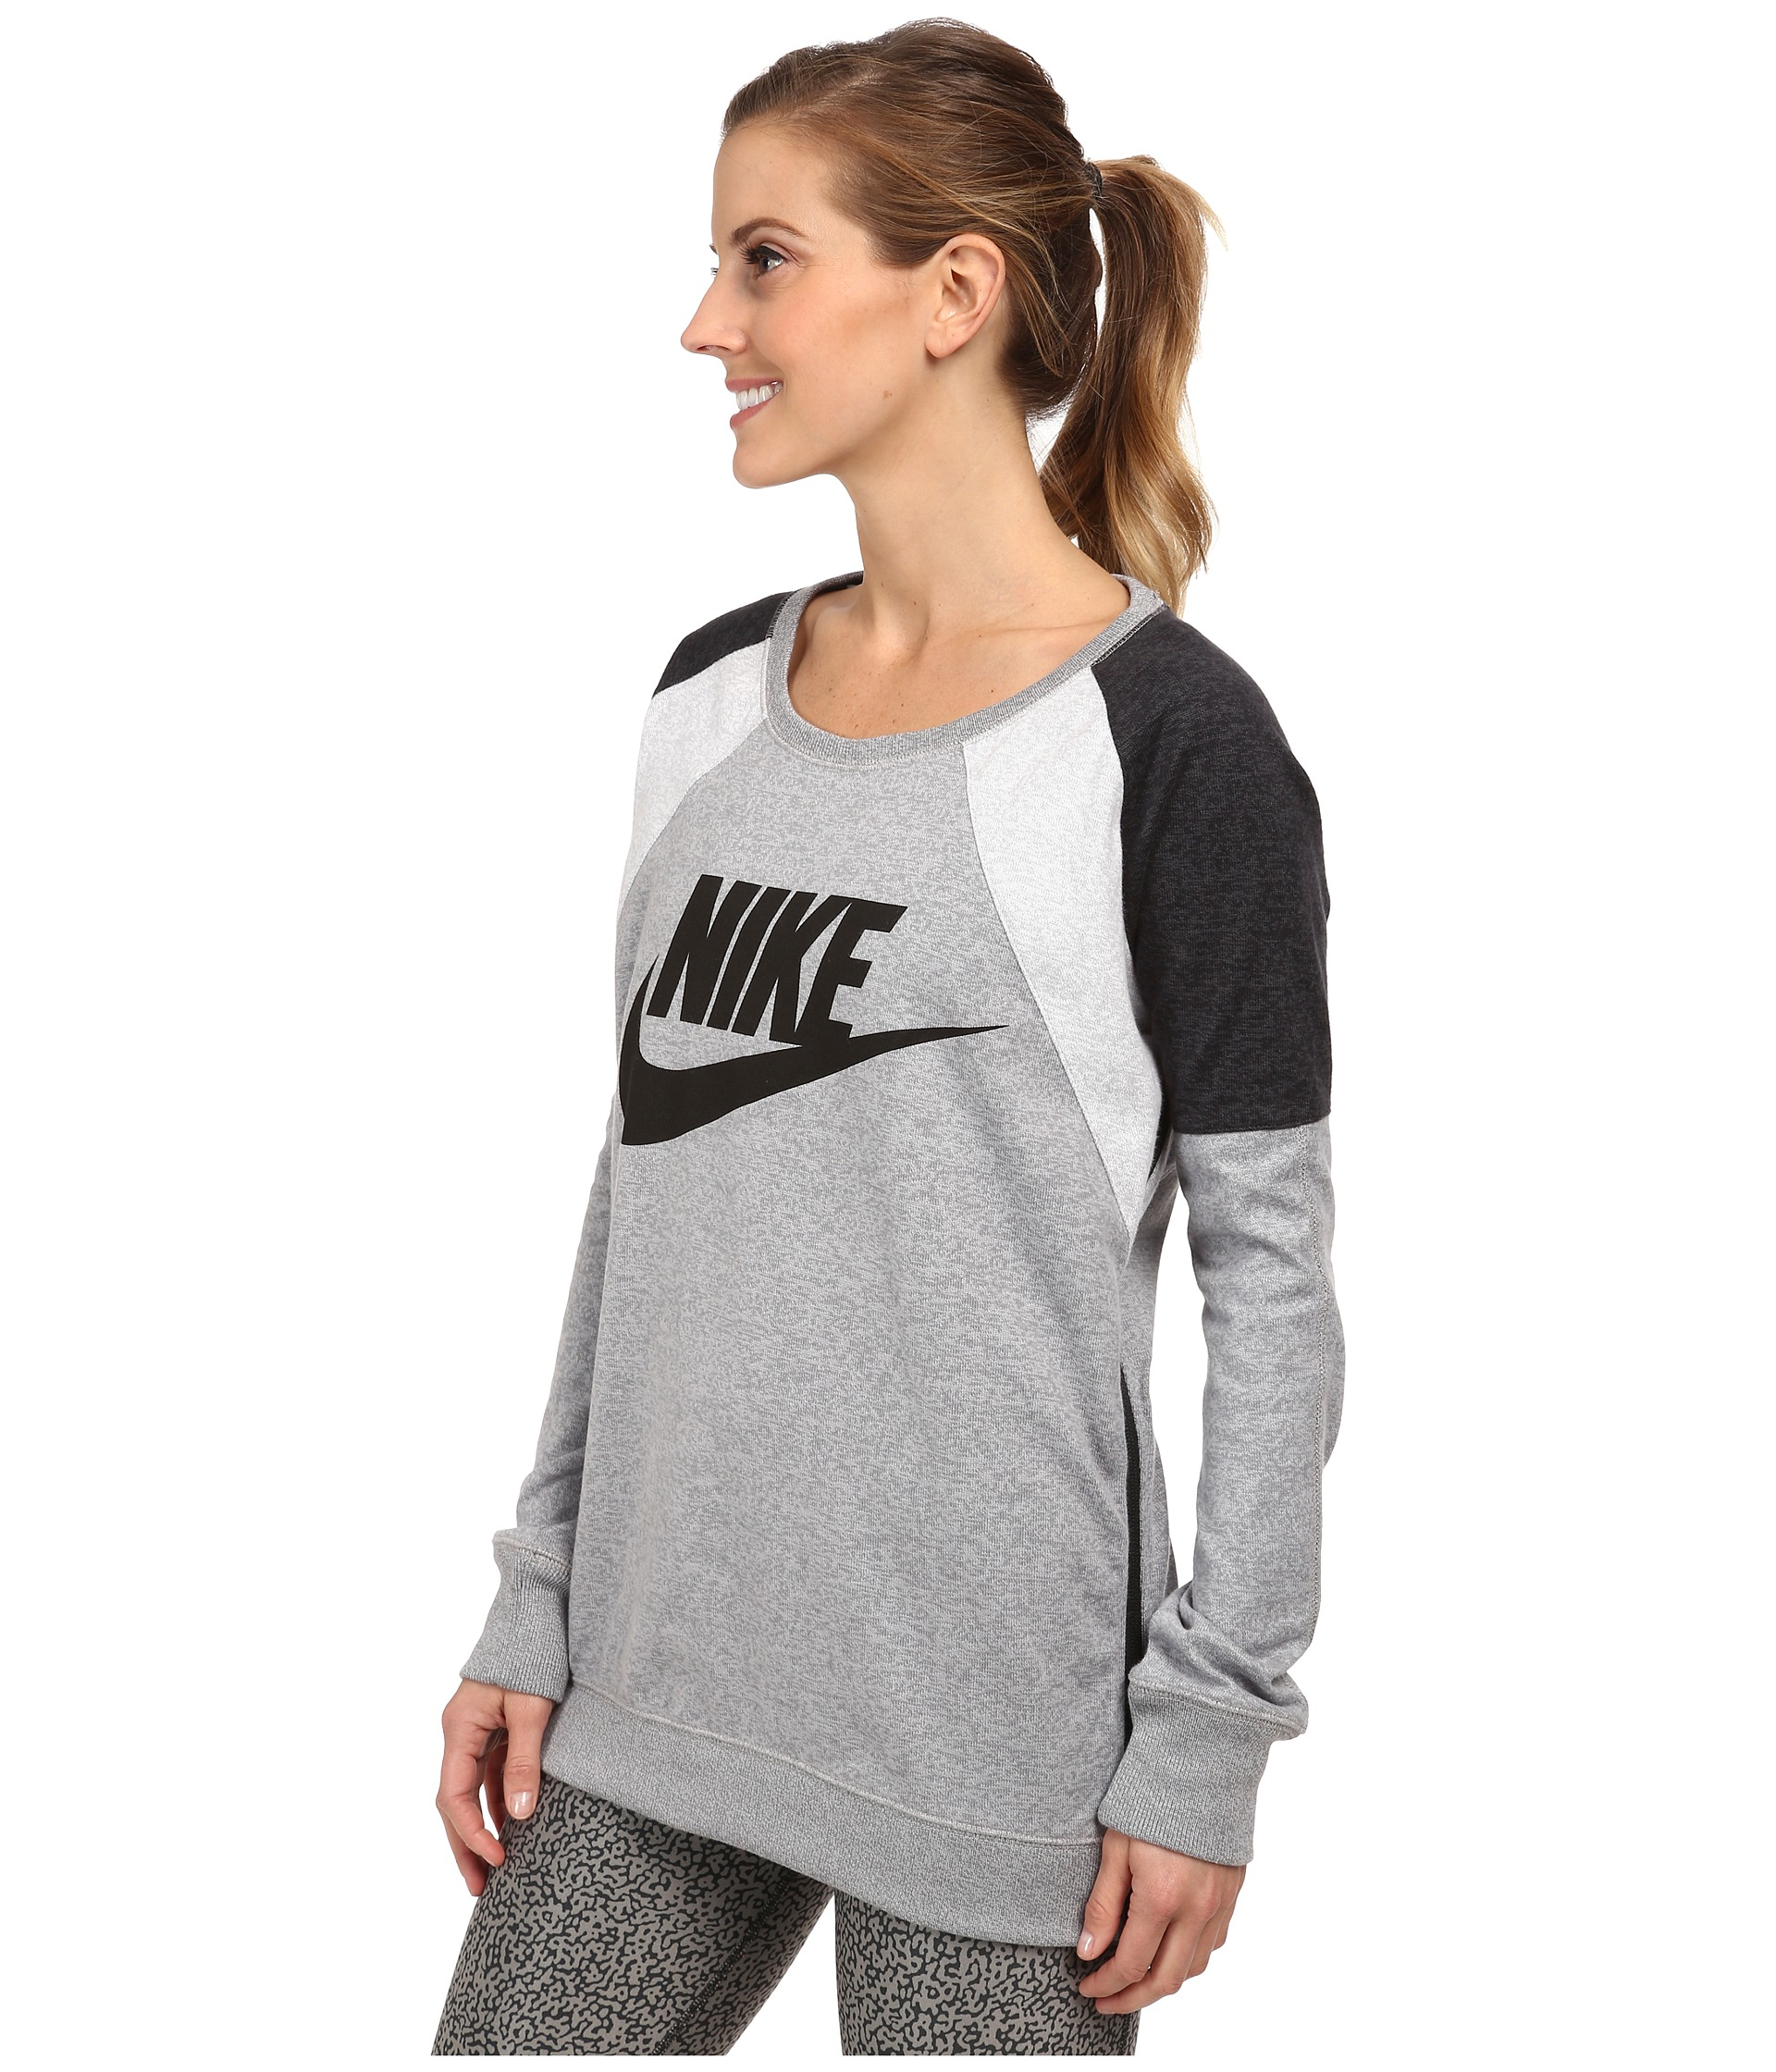 Model Nike Hyperply Women39s Tennis Pants  Things I Want  Pinterest